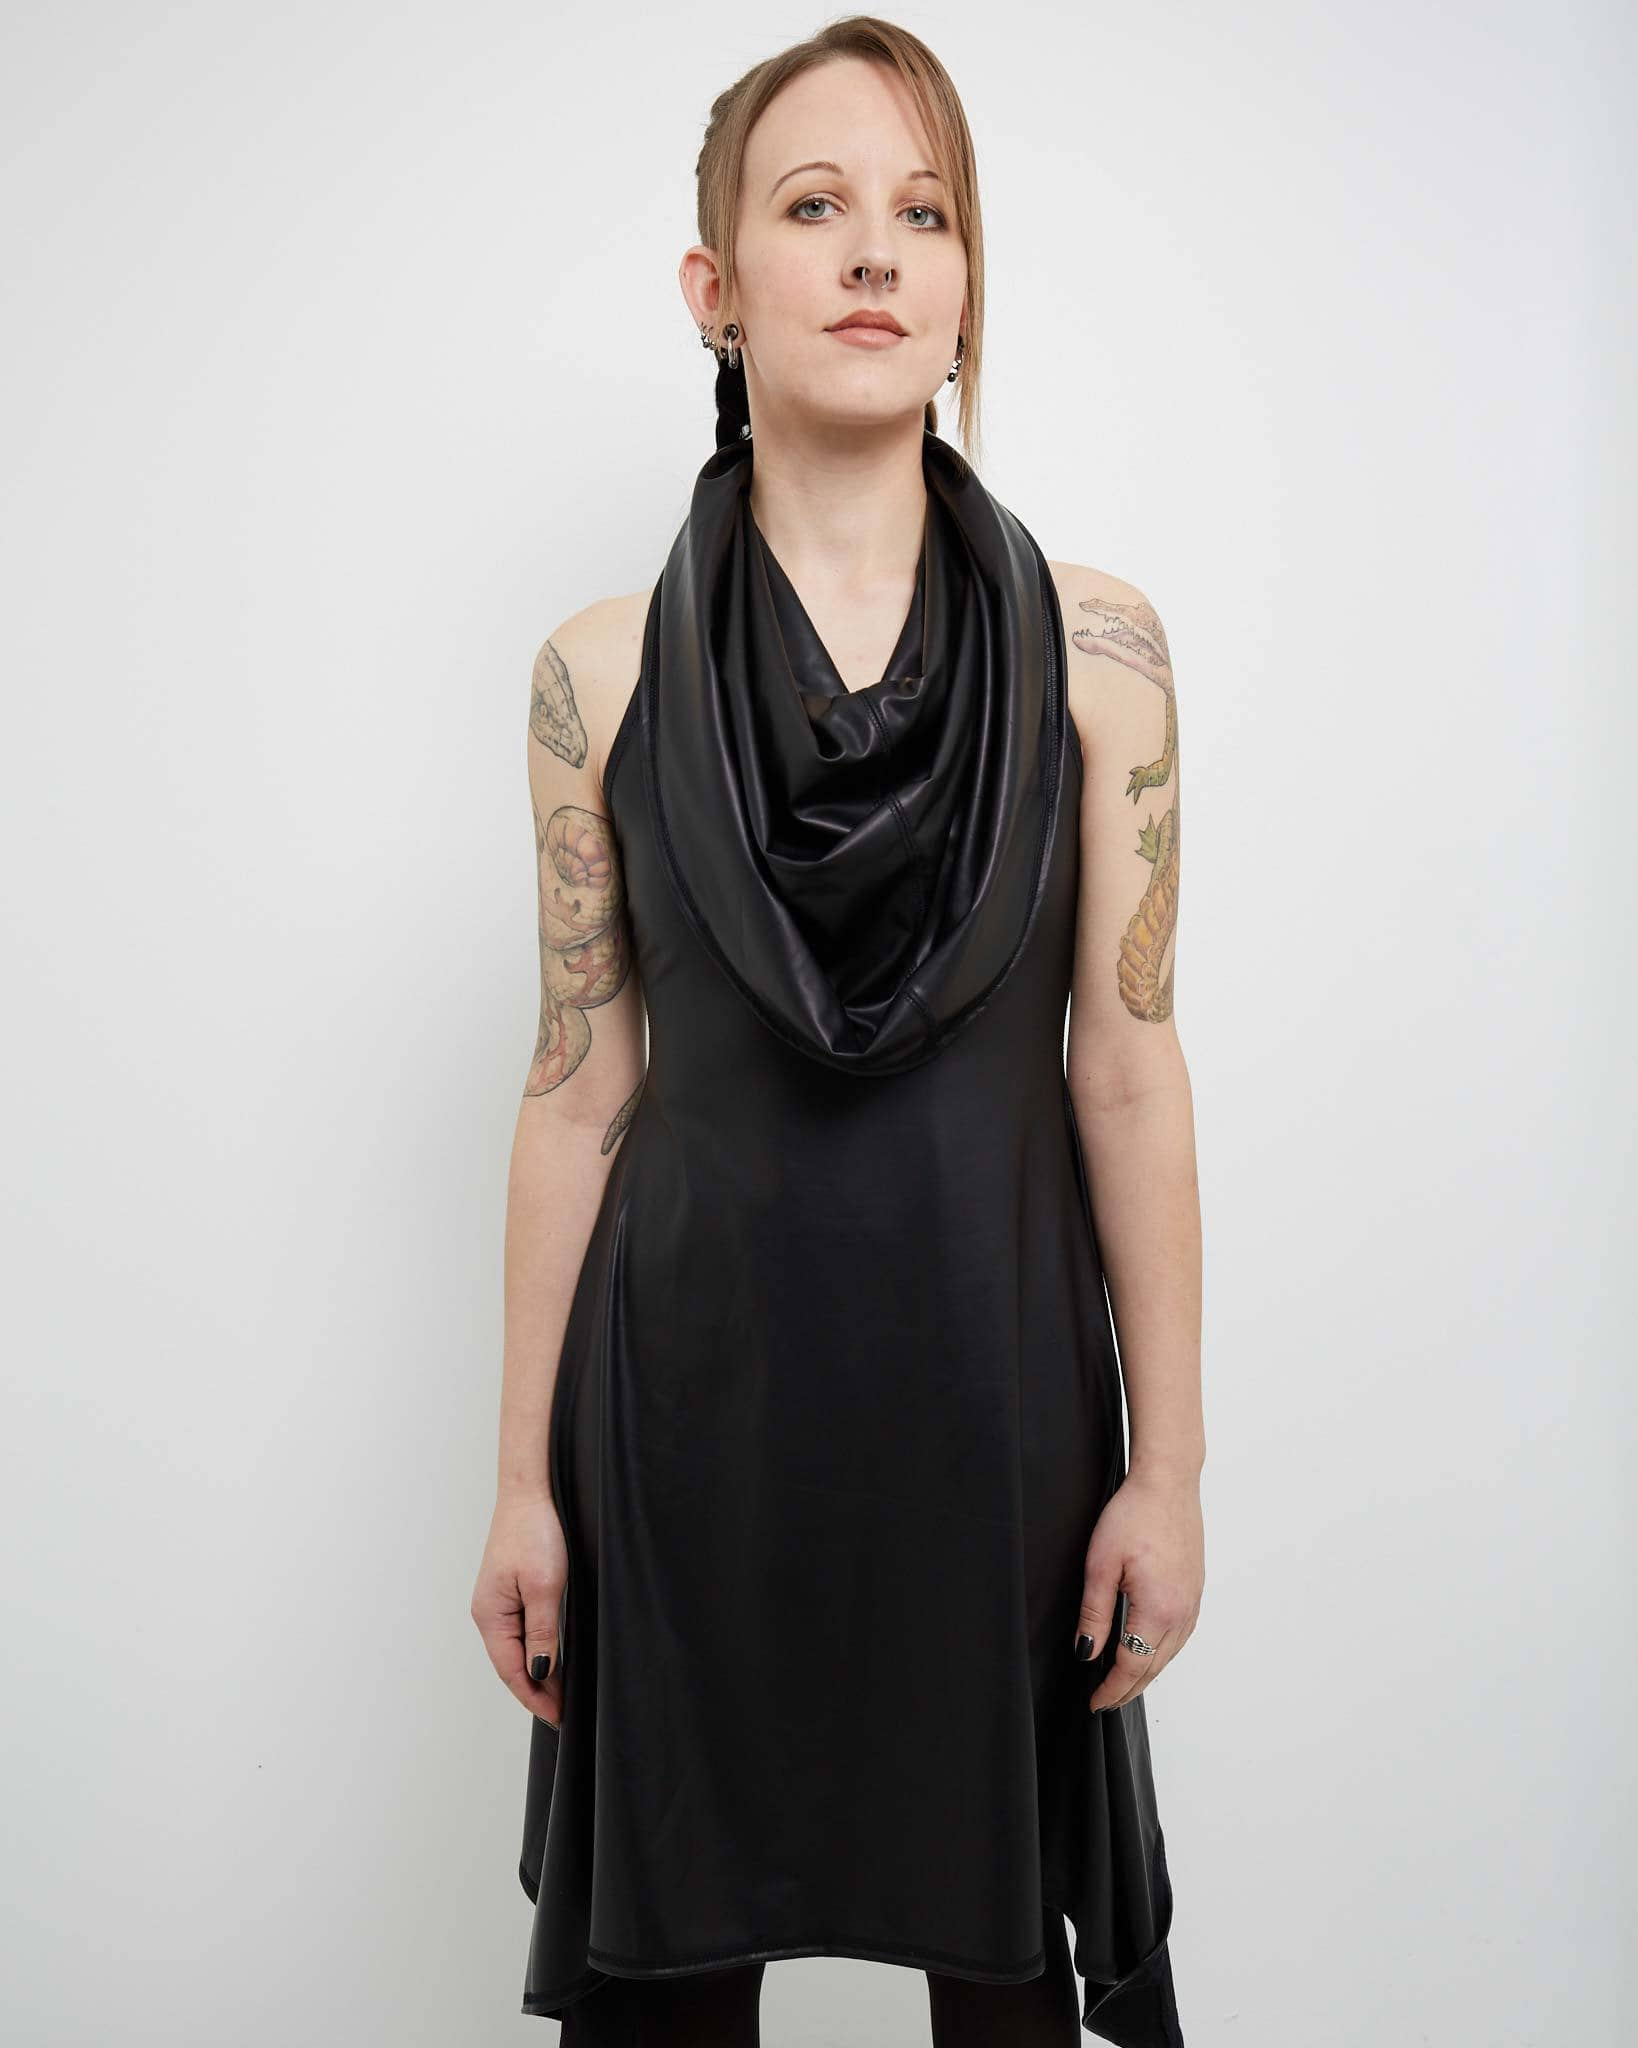 The Hybrid Dress - Crisiswear Clothing